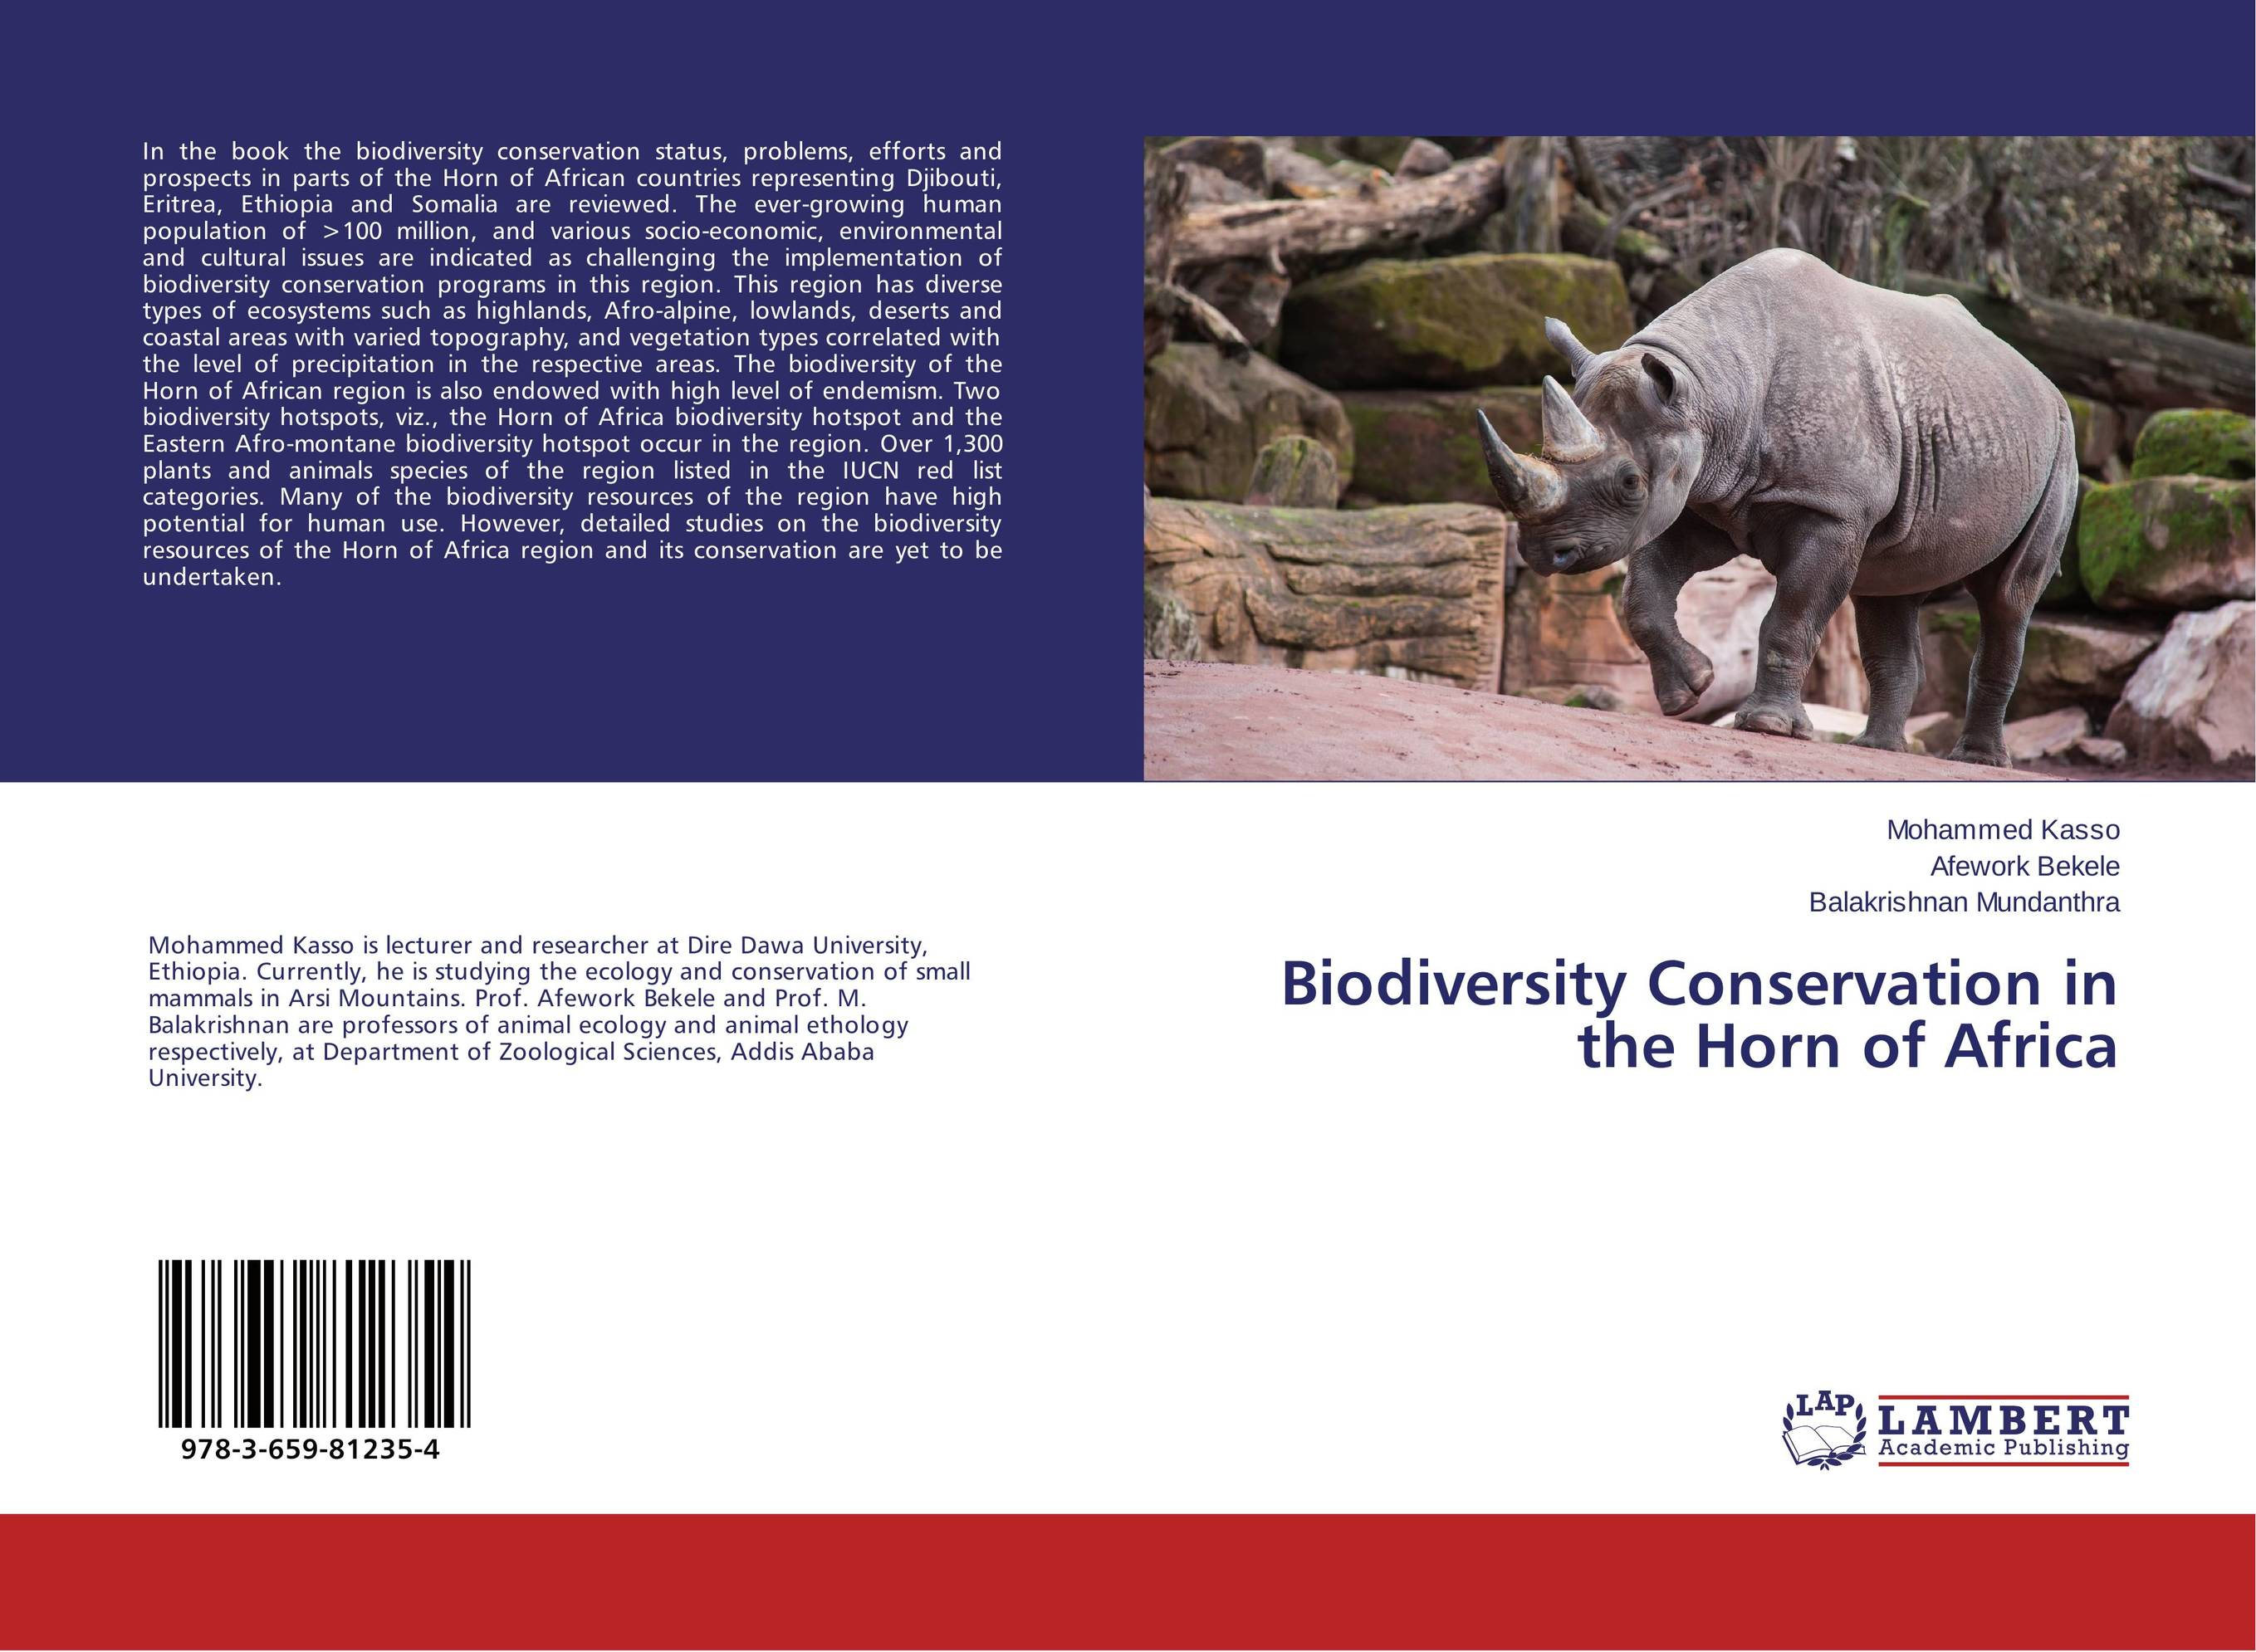 Biodiversity Conservation in the Horn of Africa neuralgias of the orofacial region